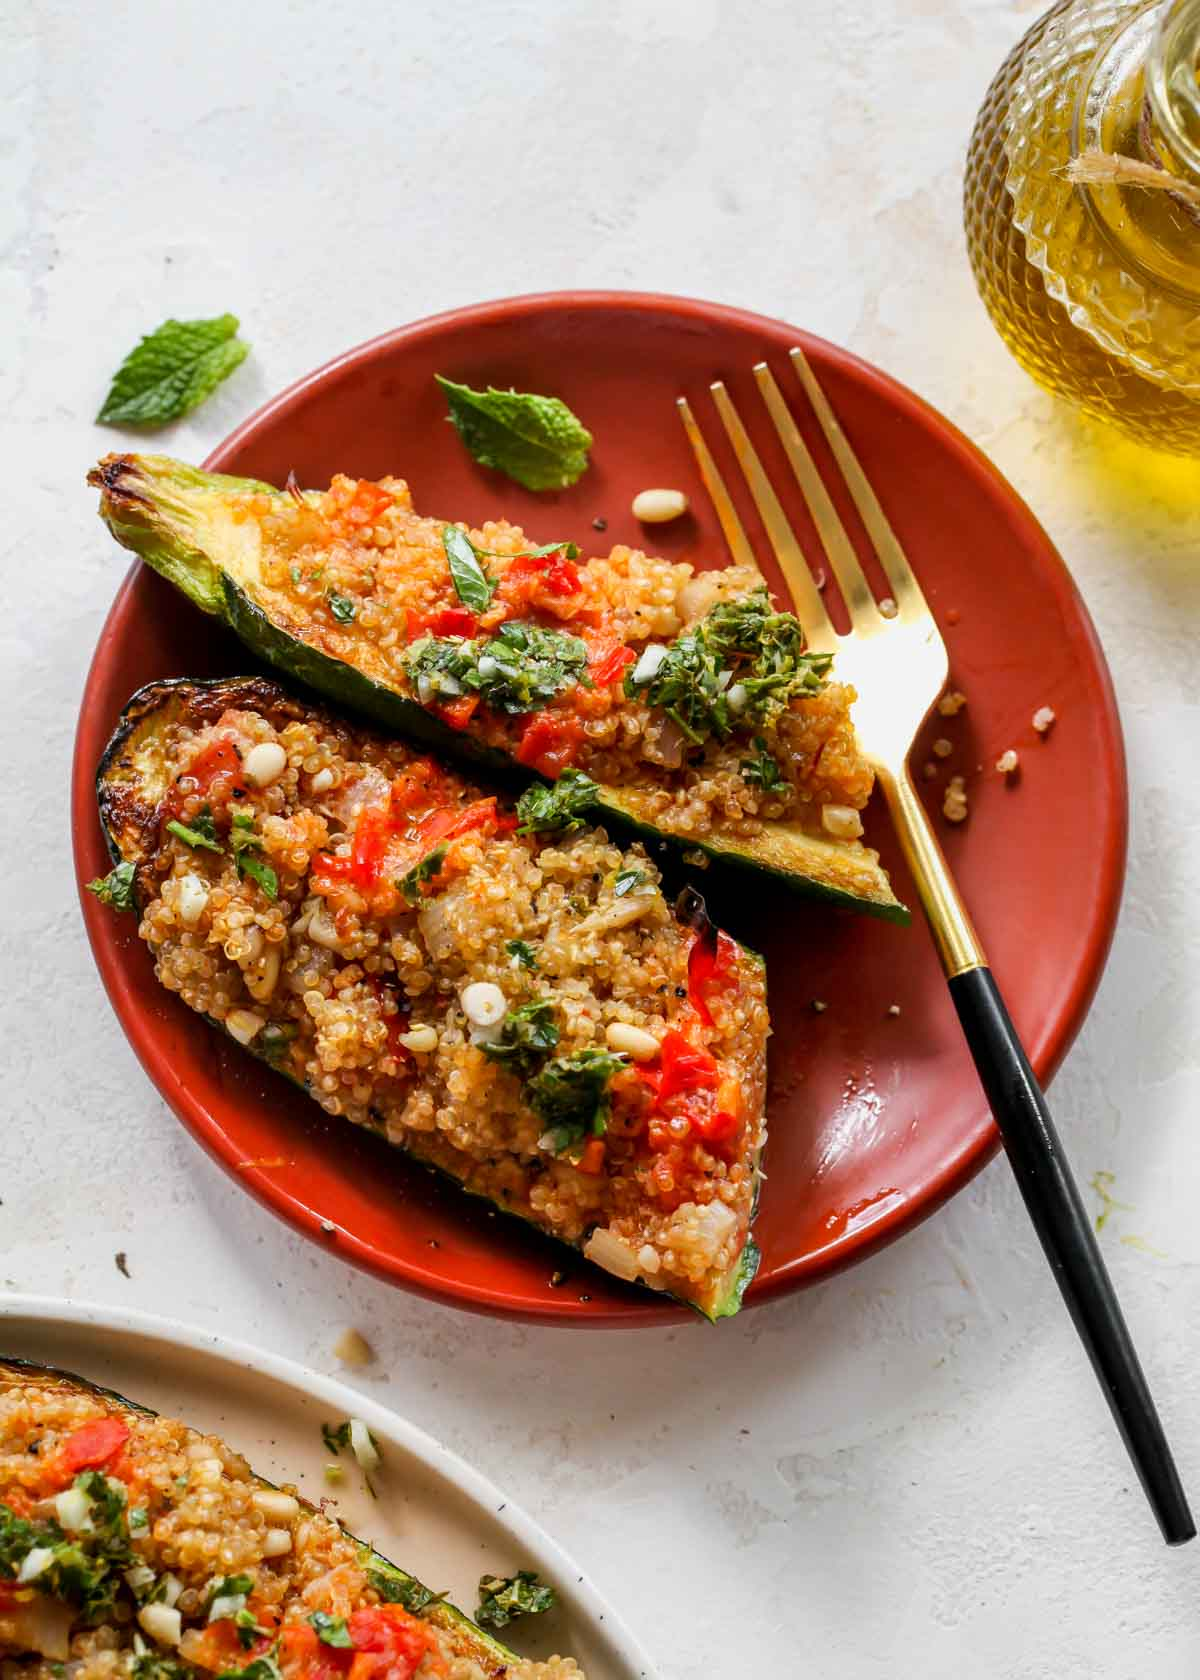 A stuffed zucchini being sliced in half on a plate